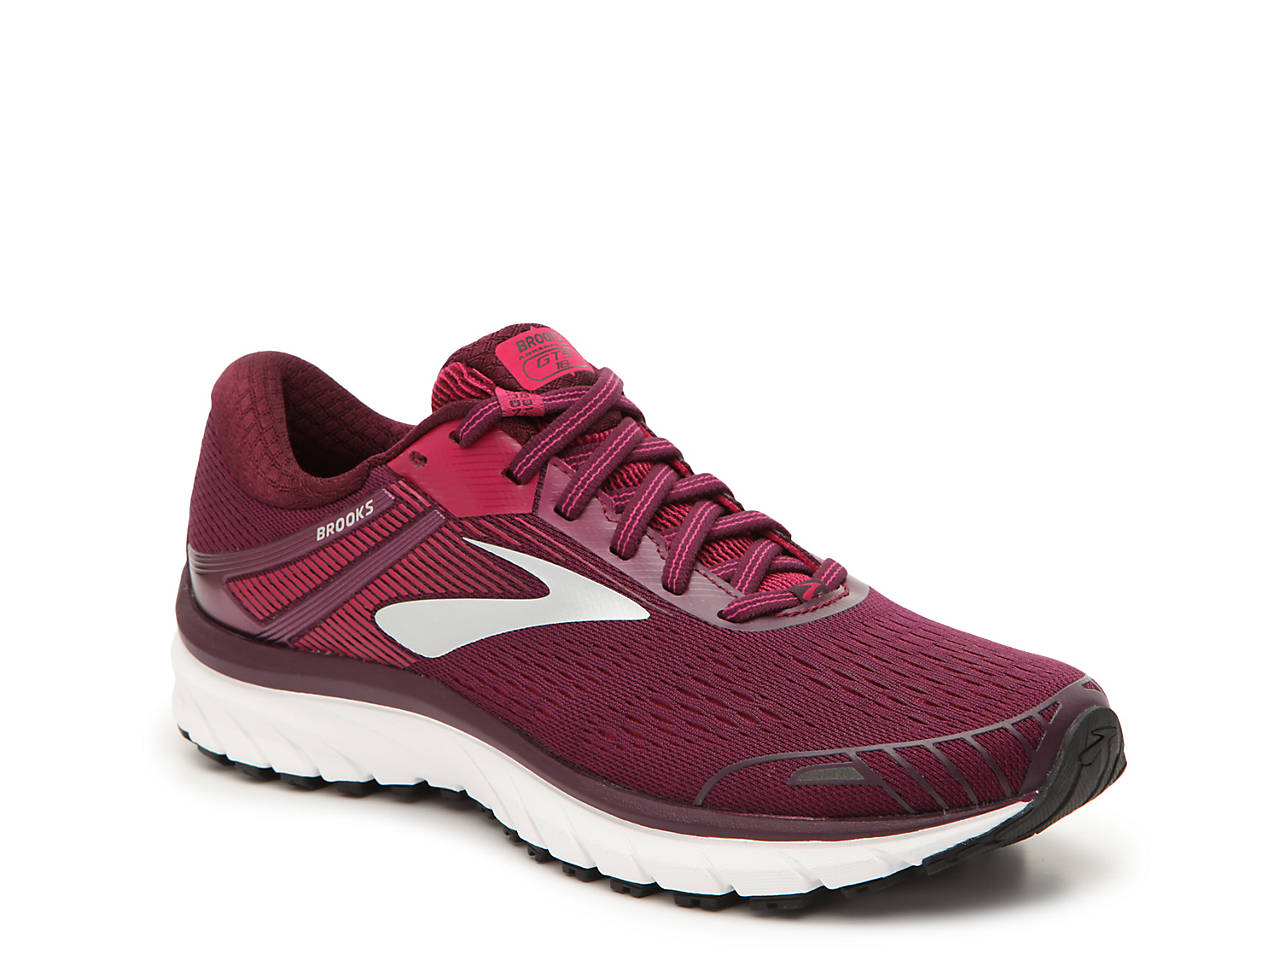 eb51705194c54 Brooks Adrenaline GTS 18 Performance Running Shoe - Women s Women s Shoes